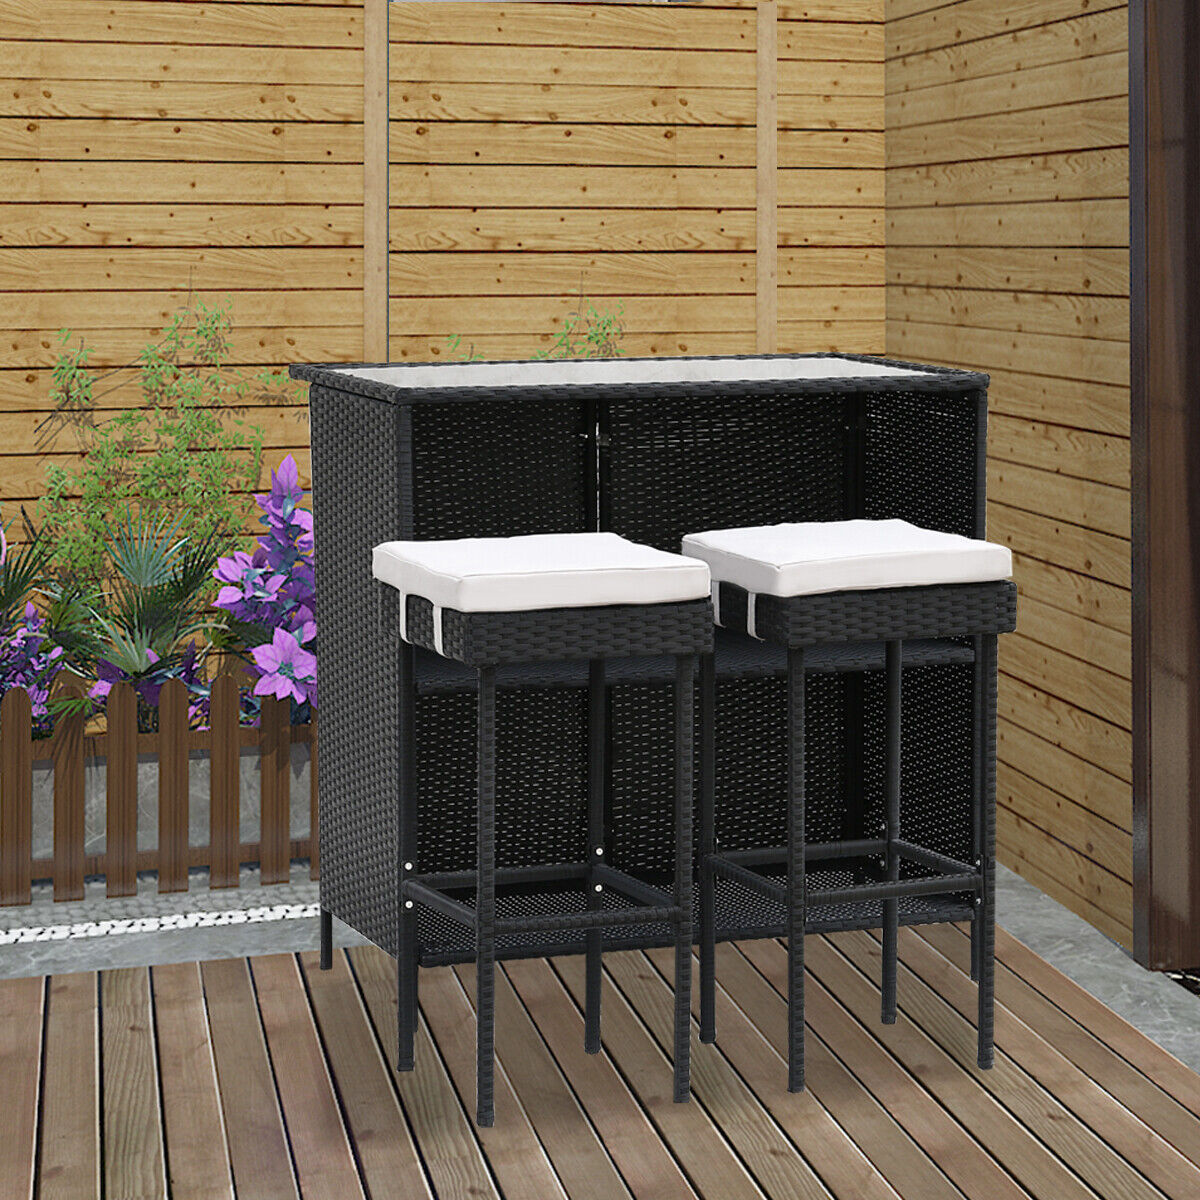 Garden Furniture - Rattan Wicker Garden Furniture 3 Set Stool Bar Table Patio Outdoor Conservator